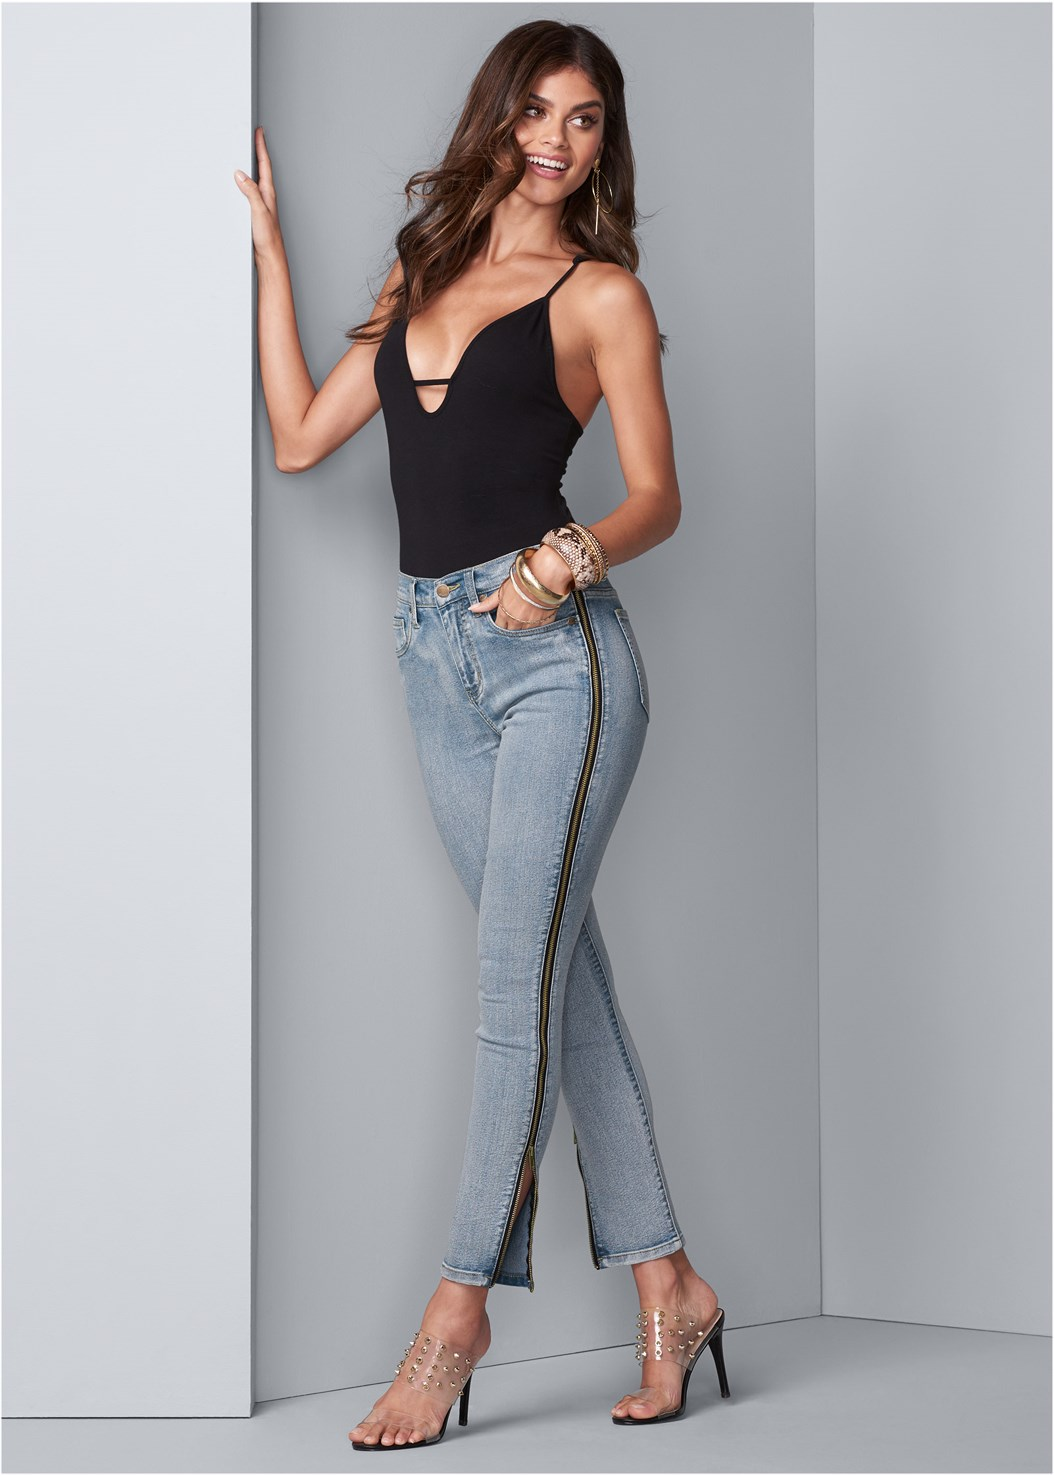 Side Zipper Jeans,Embellished Lucite Heel,Fold Over Boot,Embellished Ripped Jeans